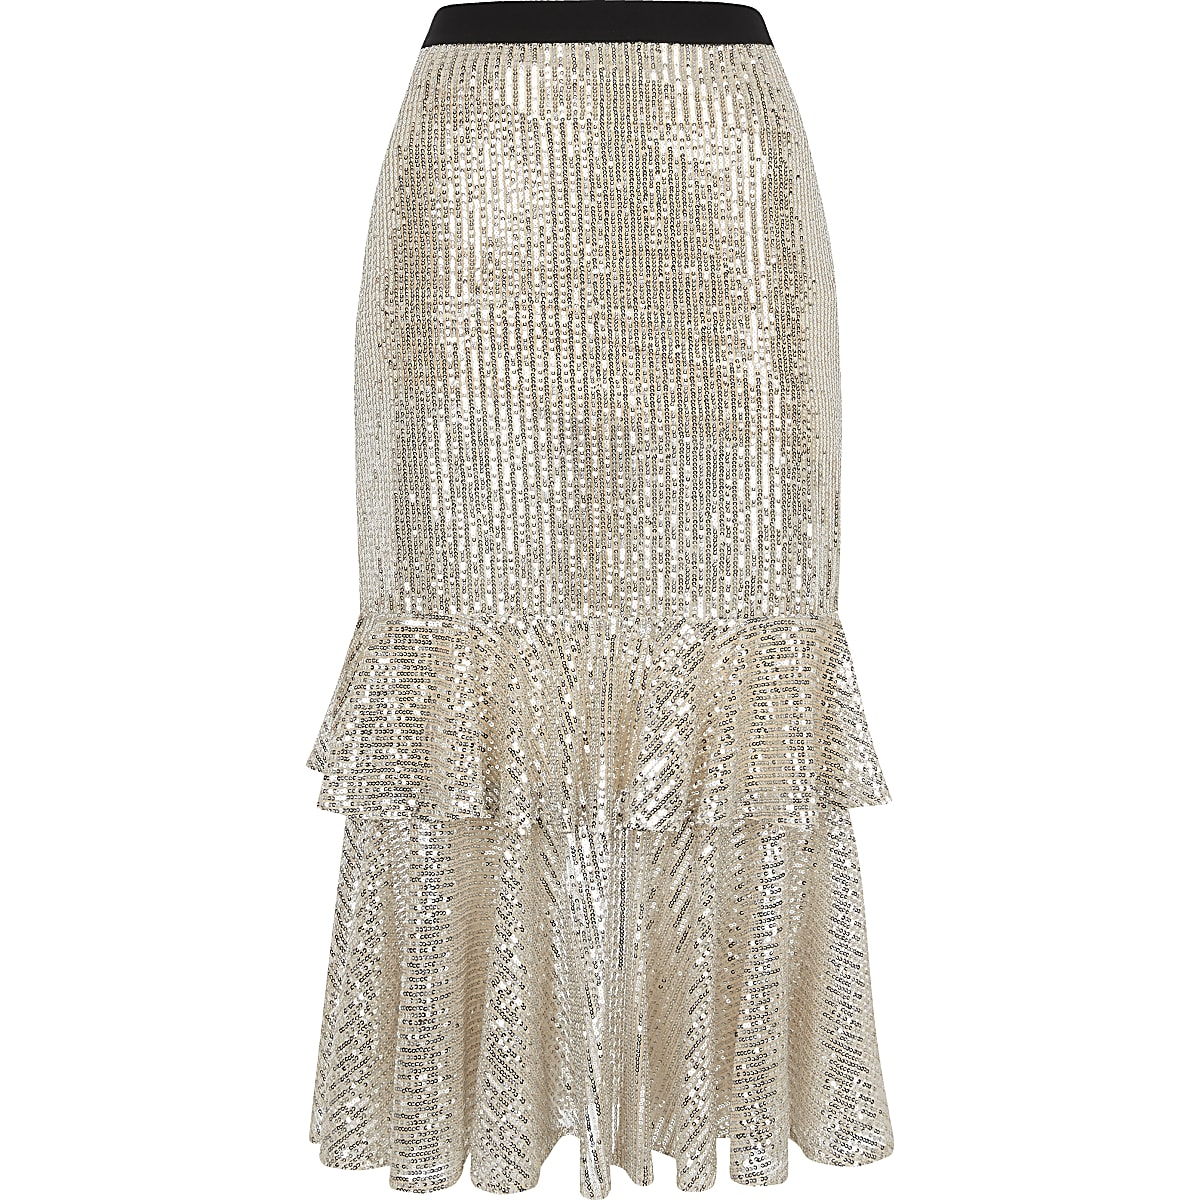 sleek better price select for clearance Silver sequin frill midi skirt